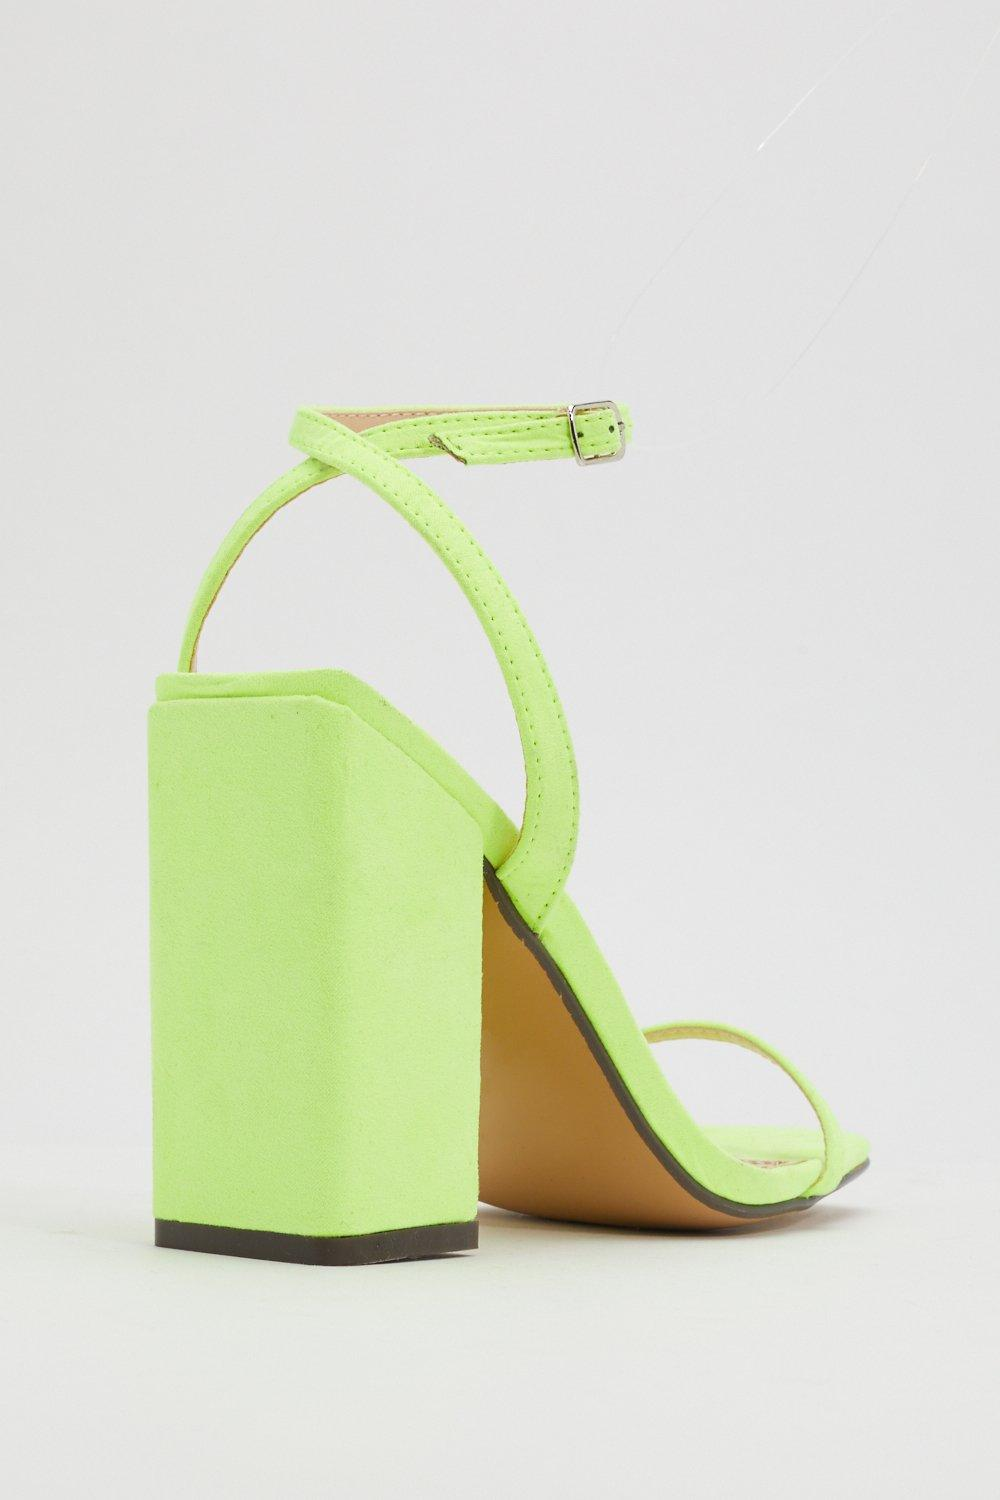 05a3faeb9a8 ... Square What You Think Block Heels. Hover to zoom